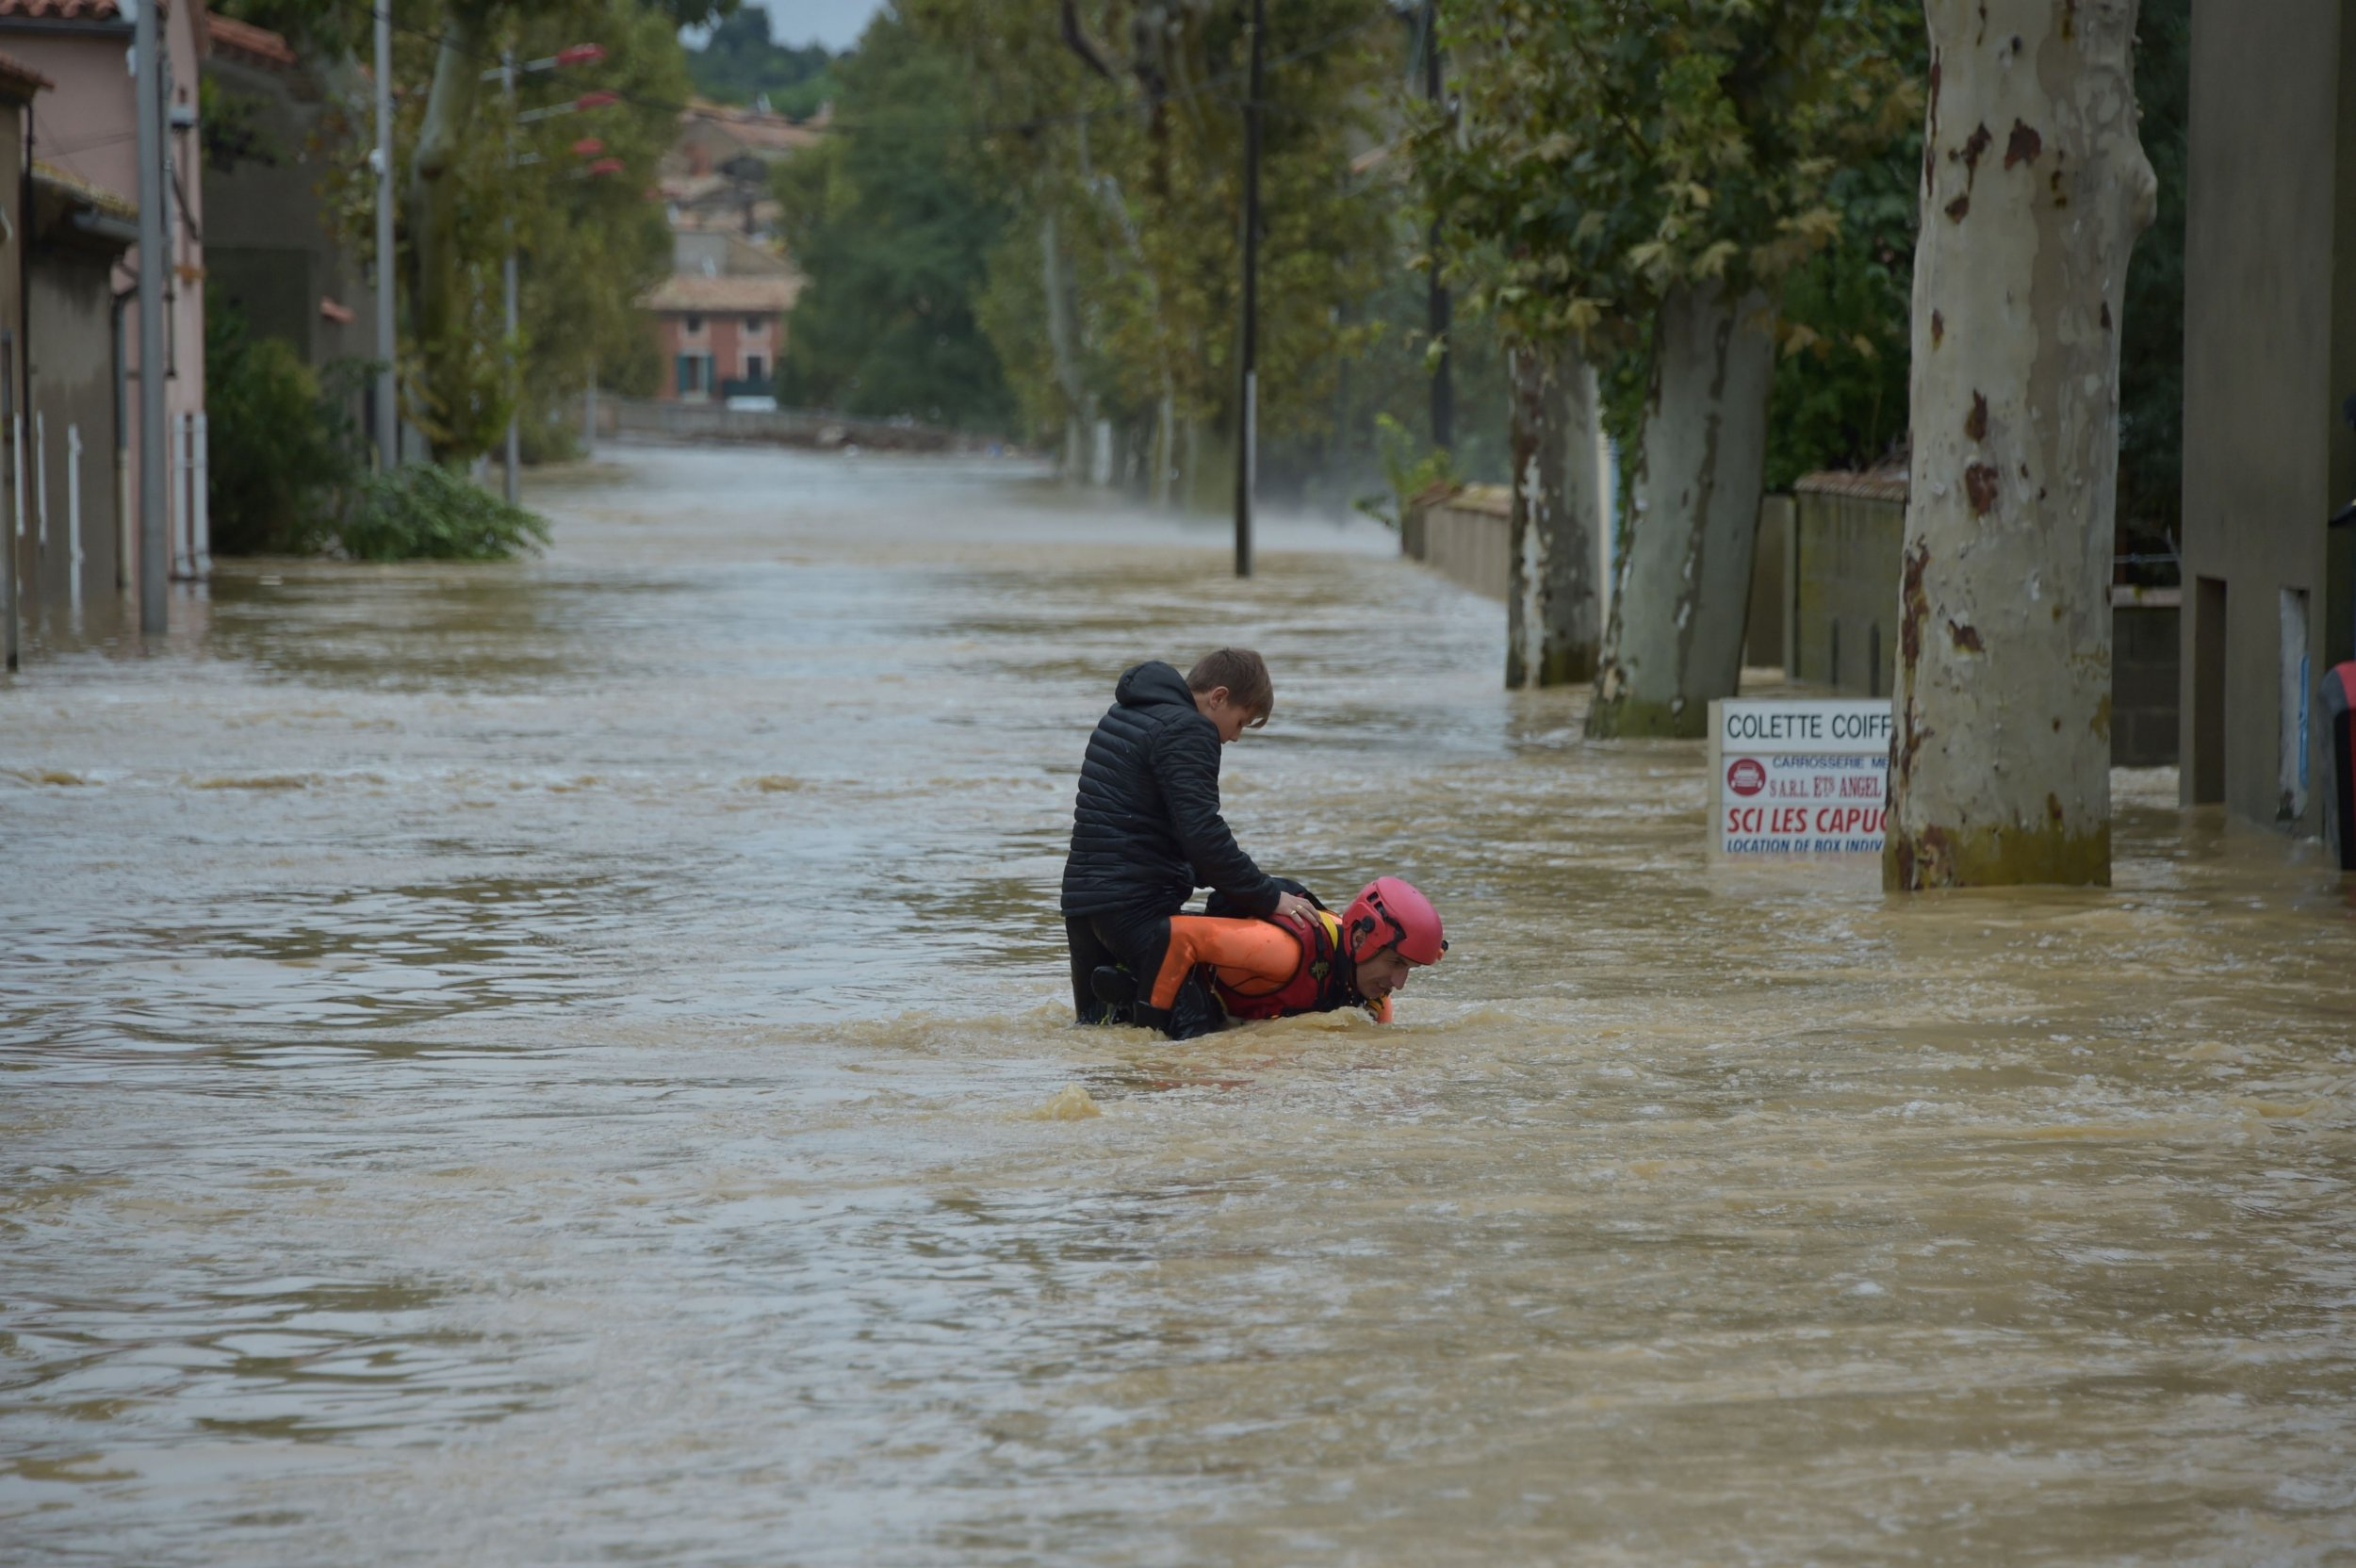 A firefighter helps a younster in a flooded street during rescue operation following heavy rains that saw rivers bursting banks on October 15, 2018 in Trebes, near Carcassone, southern France. - Six people died following storm and flash floods during the night of October 15 in the Aude department in southern France, authorities said. (Photo by Pascal PAVANI / AFP)PASCAL PAVANI/AFP/Getty Images